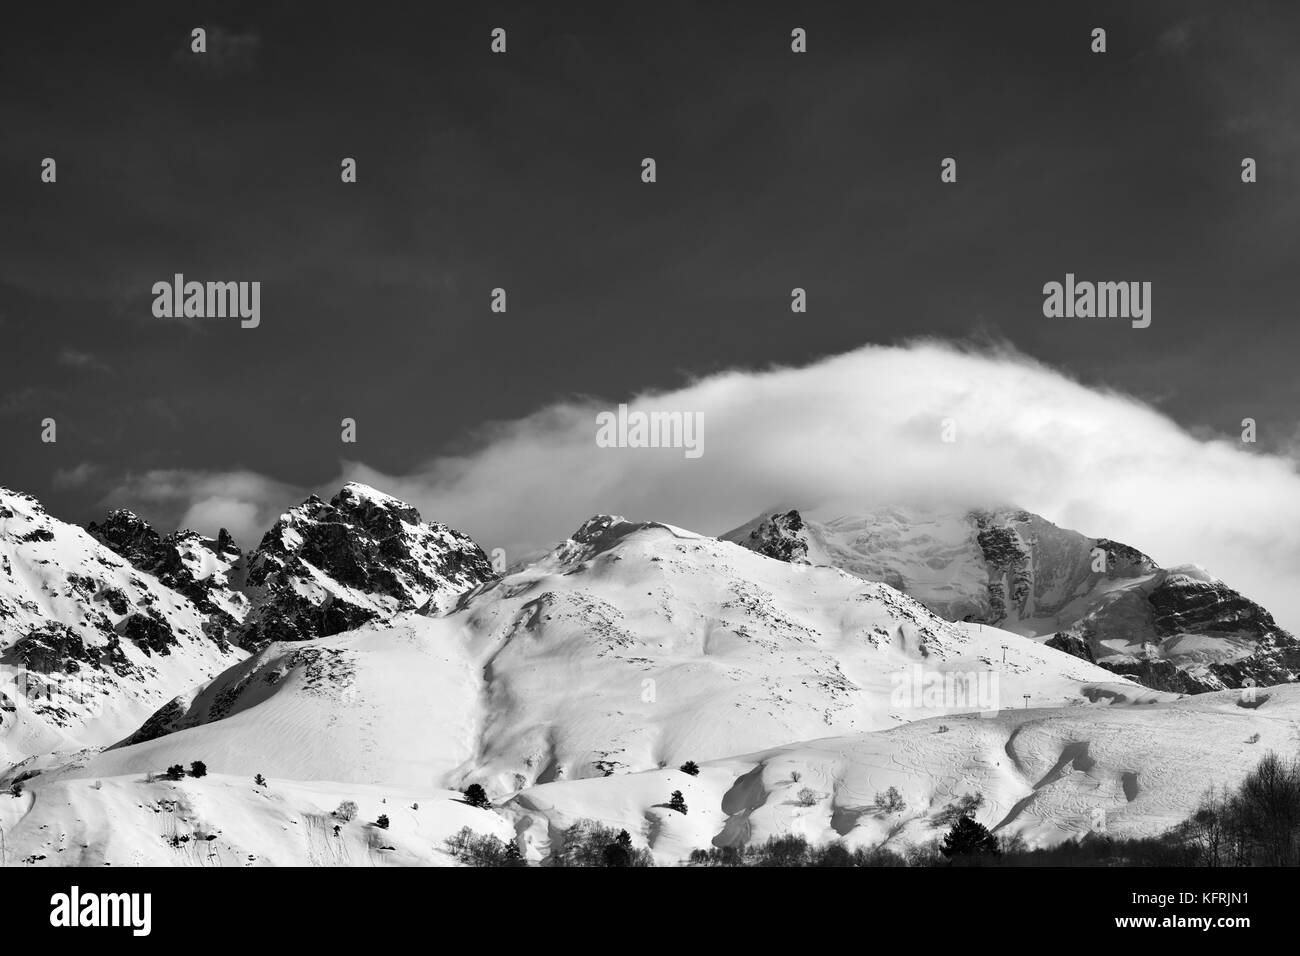 Black and white mountains in clouds and off-piste slope in winter. Caucasus Mountains, Mount Tetnuldi, Svaneti region - Stock Image